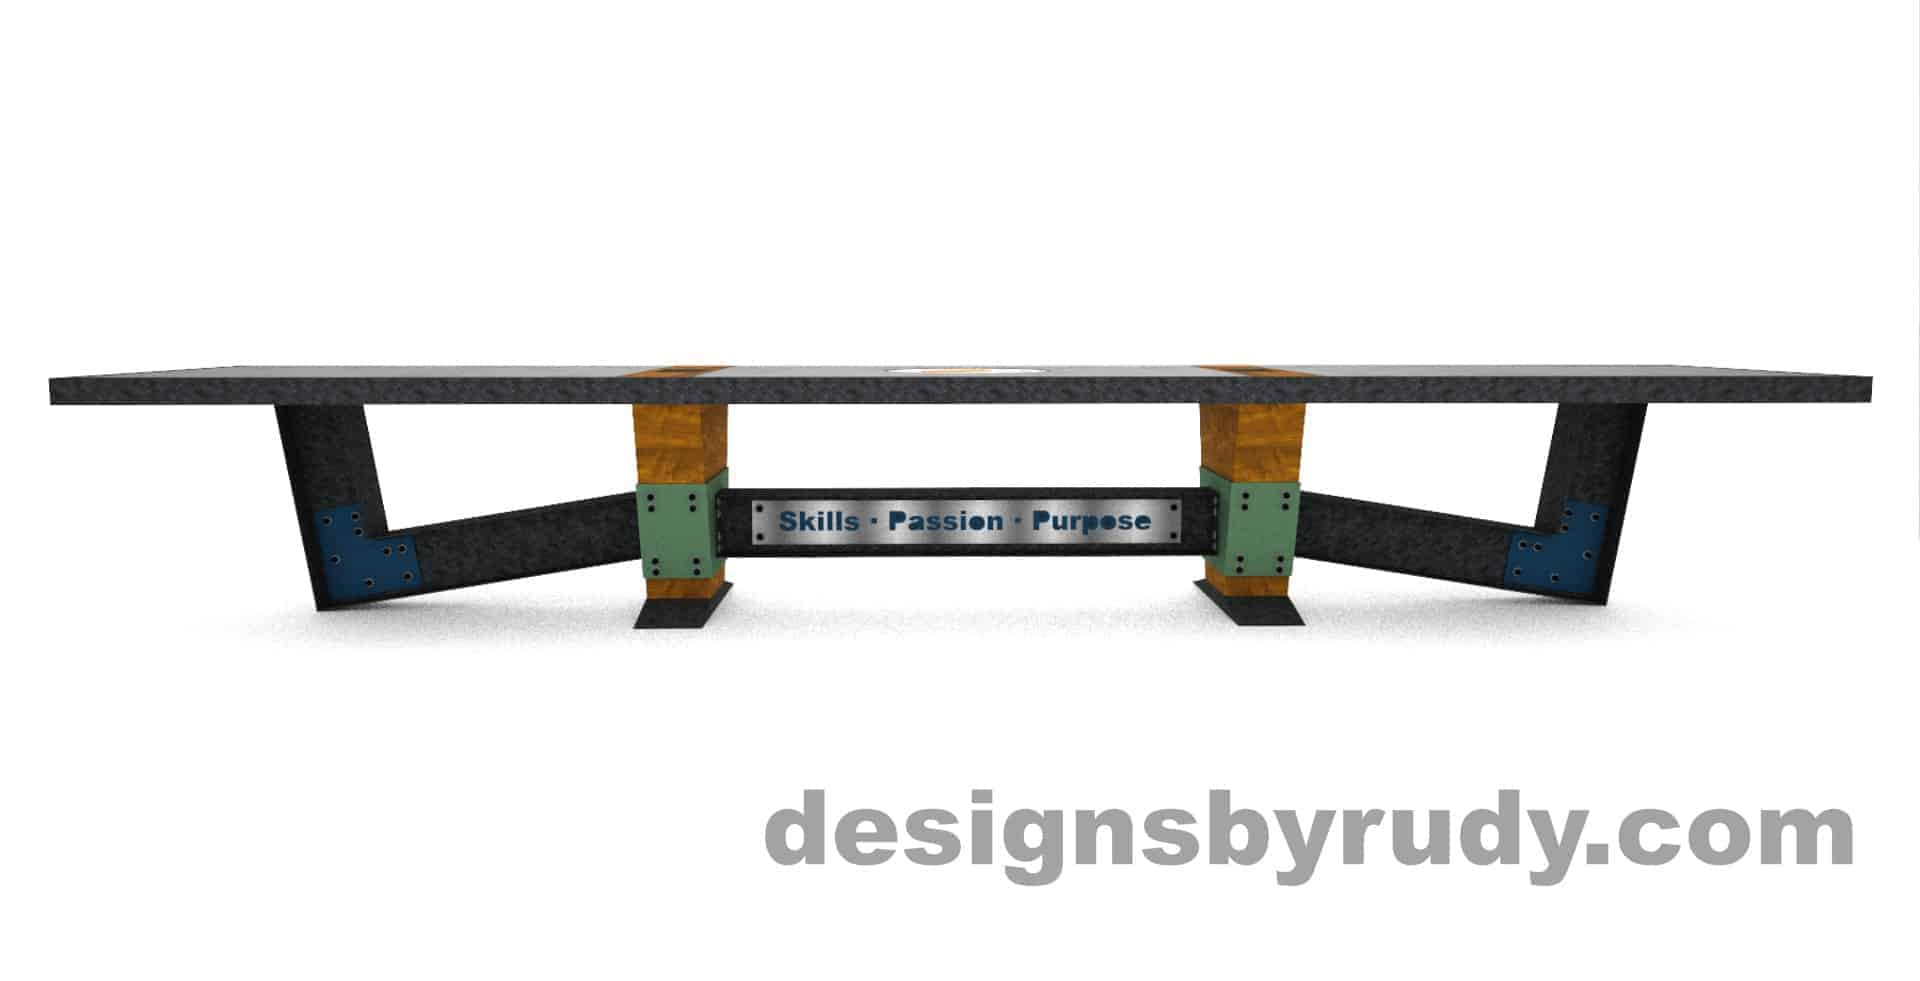 4 Concept concrete, steel, and wood conference table full top view